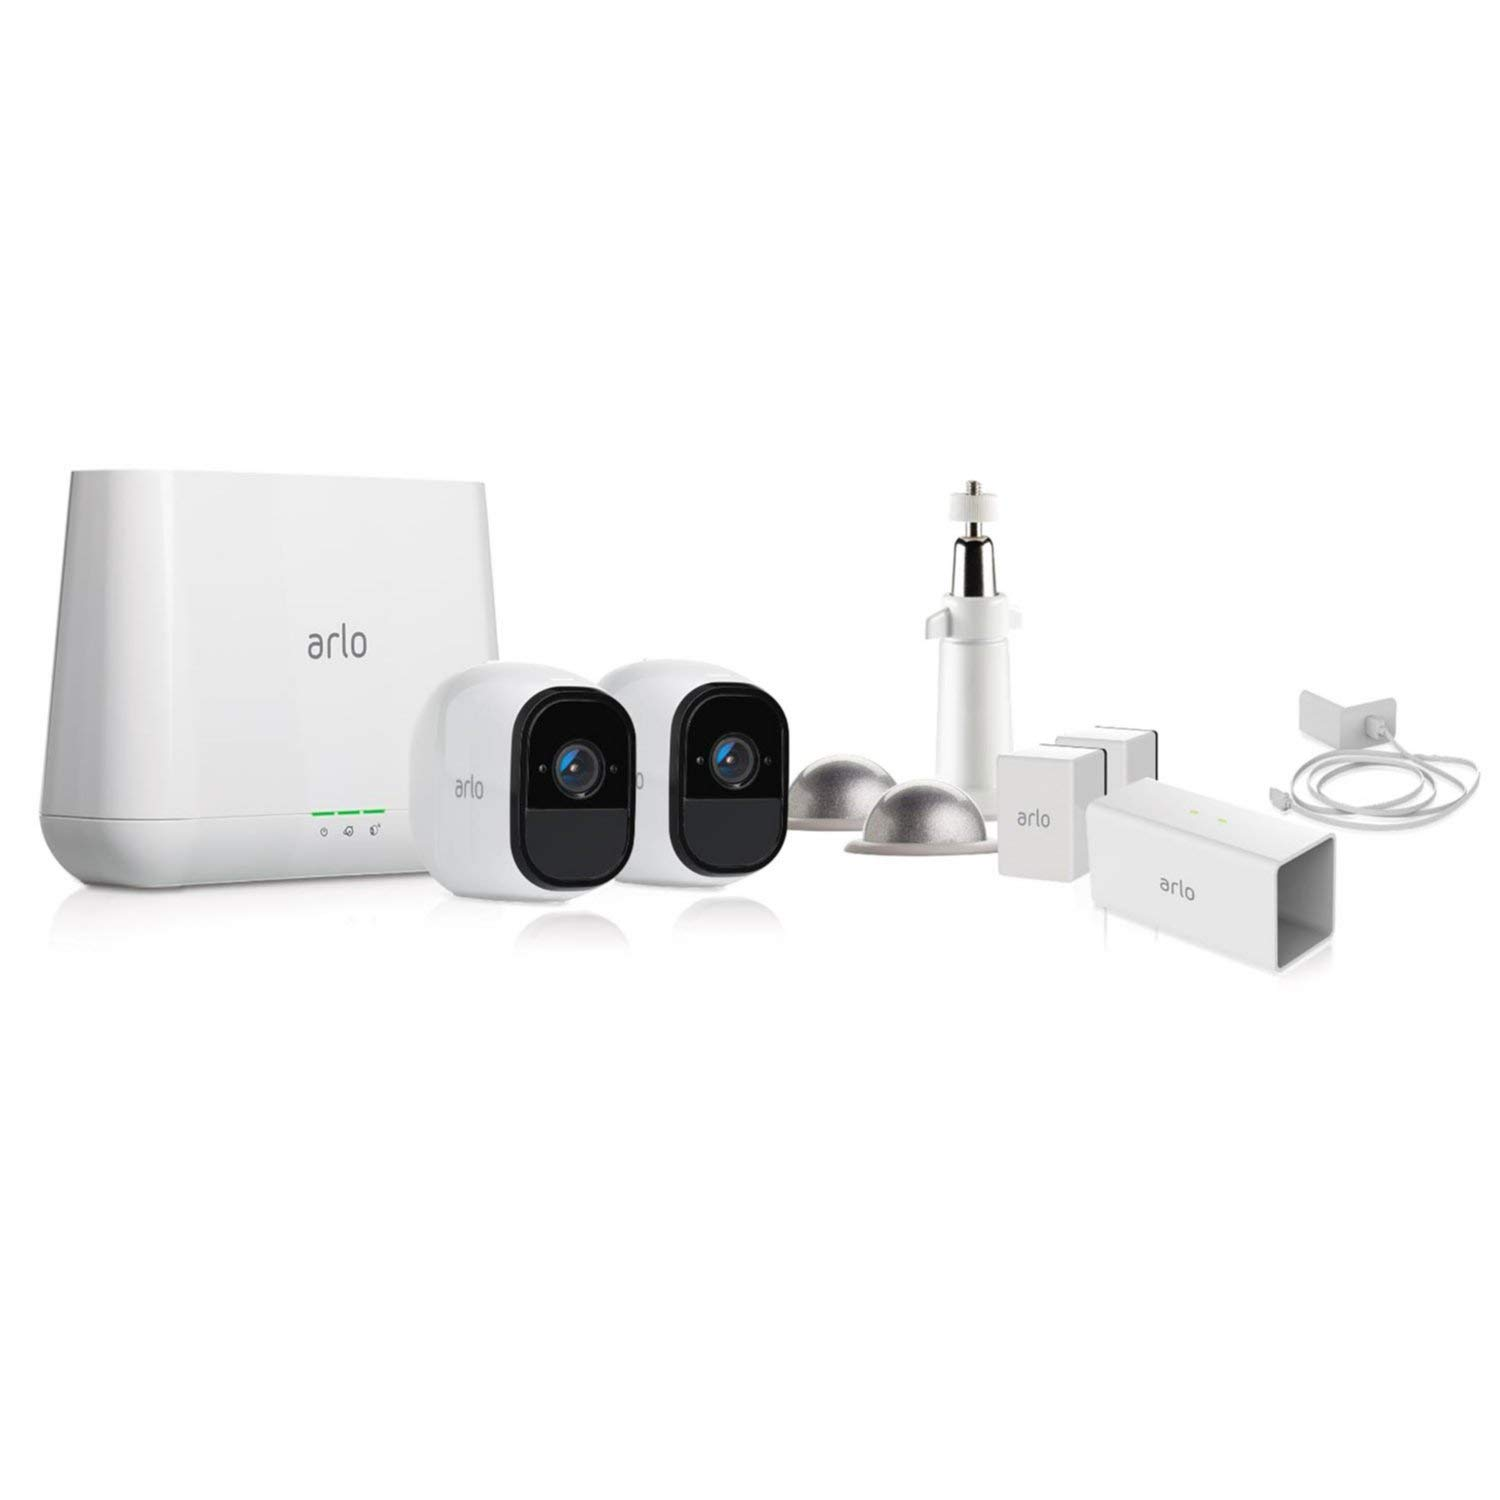 Arlo Pro VMS4230S-100NAR Wire-Free HD Camera Security System (2-Camera Kit) by Arlo